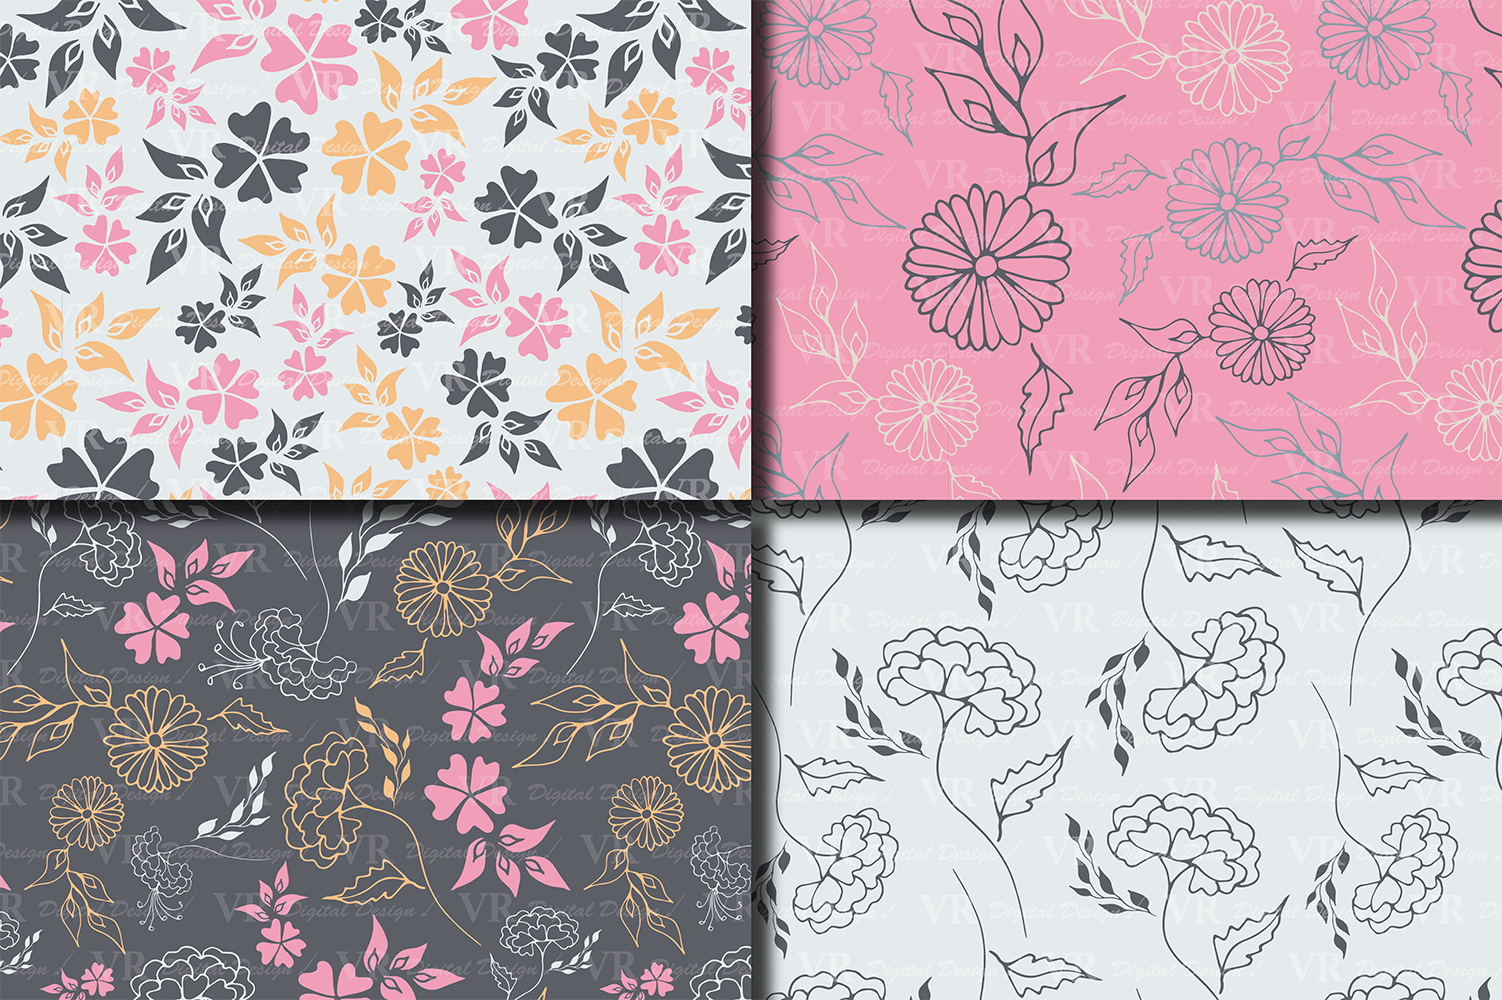 Seamless Elegant Floral Digital Paper with hand drawn flowers - Gray Blue Peach Pink example image 2